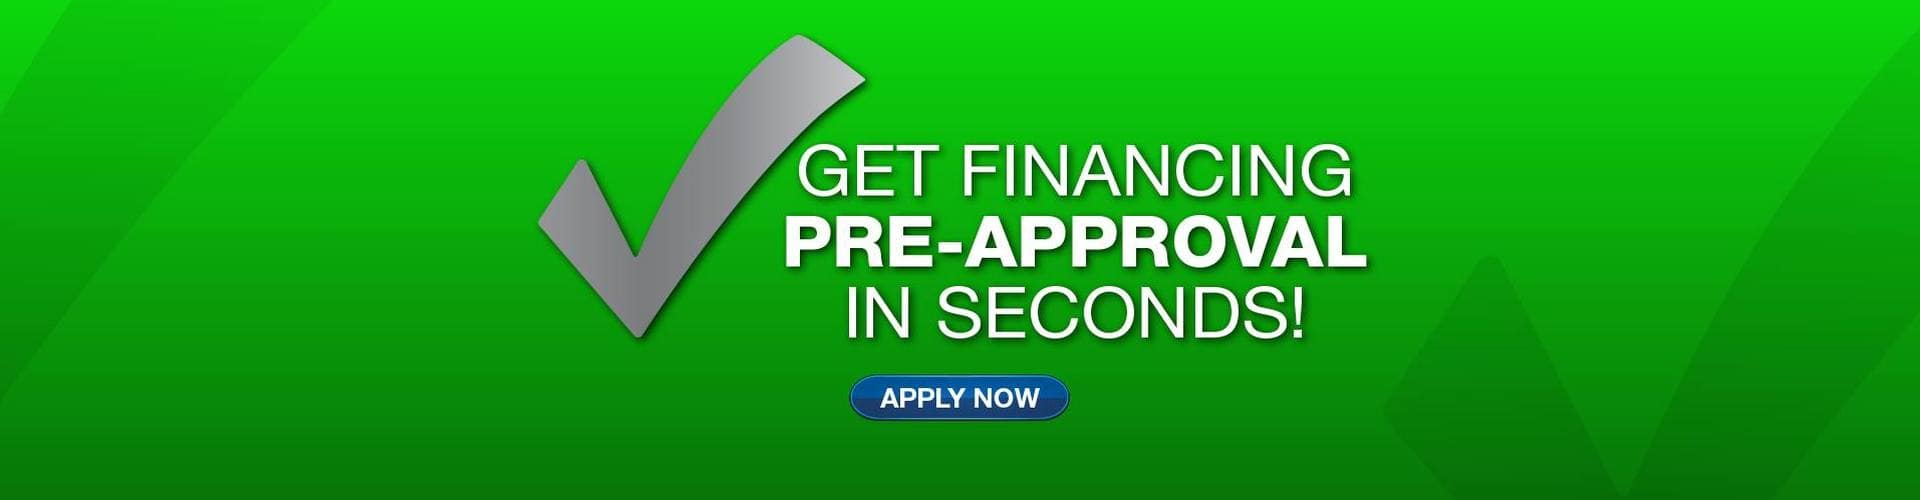 green banner with gray check mark that reads get financing pre-approval in seconds